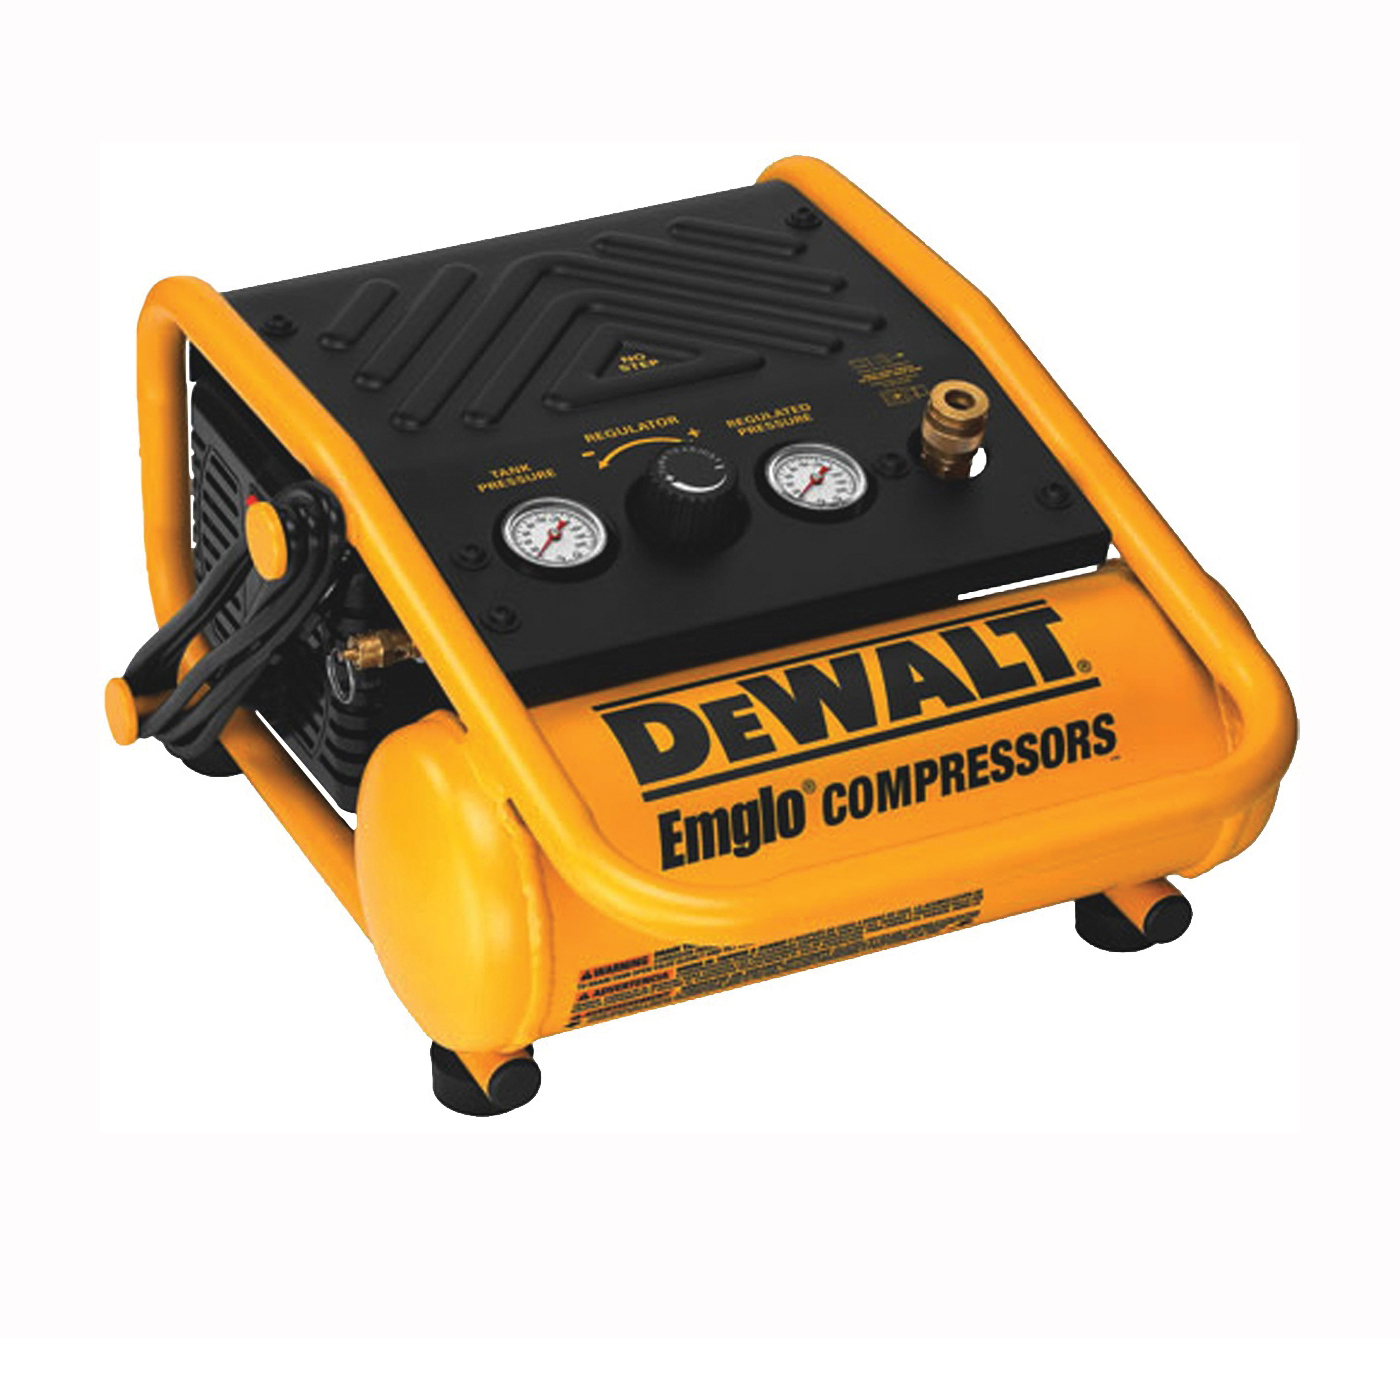 Picture of DeWALT D55140 Portable Trim Compressor, 1 gal Tank, 0.3 hp, 120 V, 135 psi Pressure, 1 cfm Air